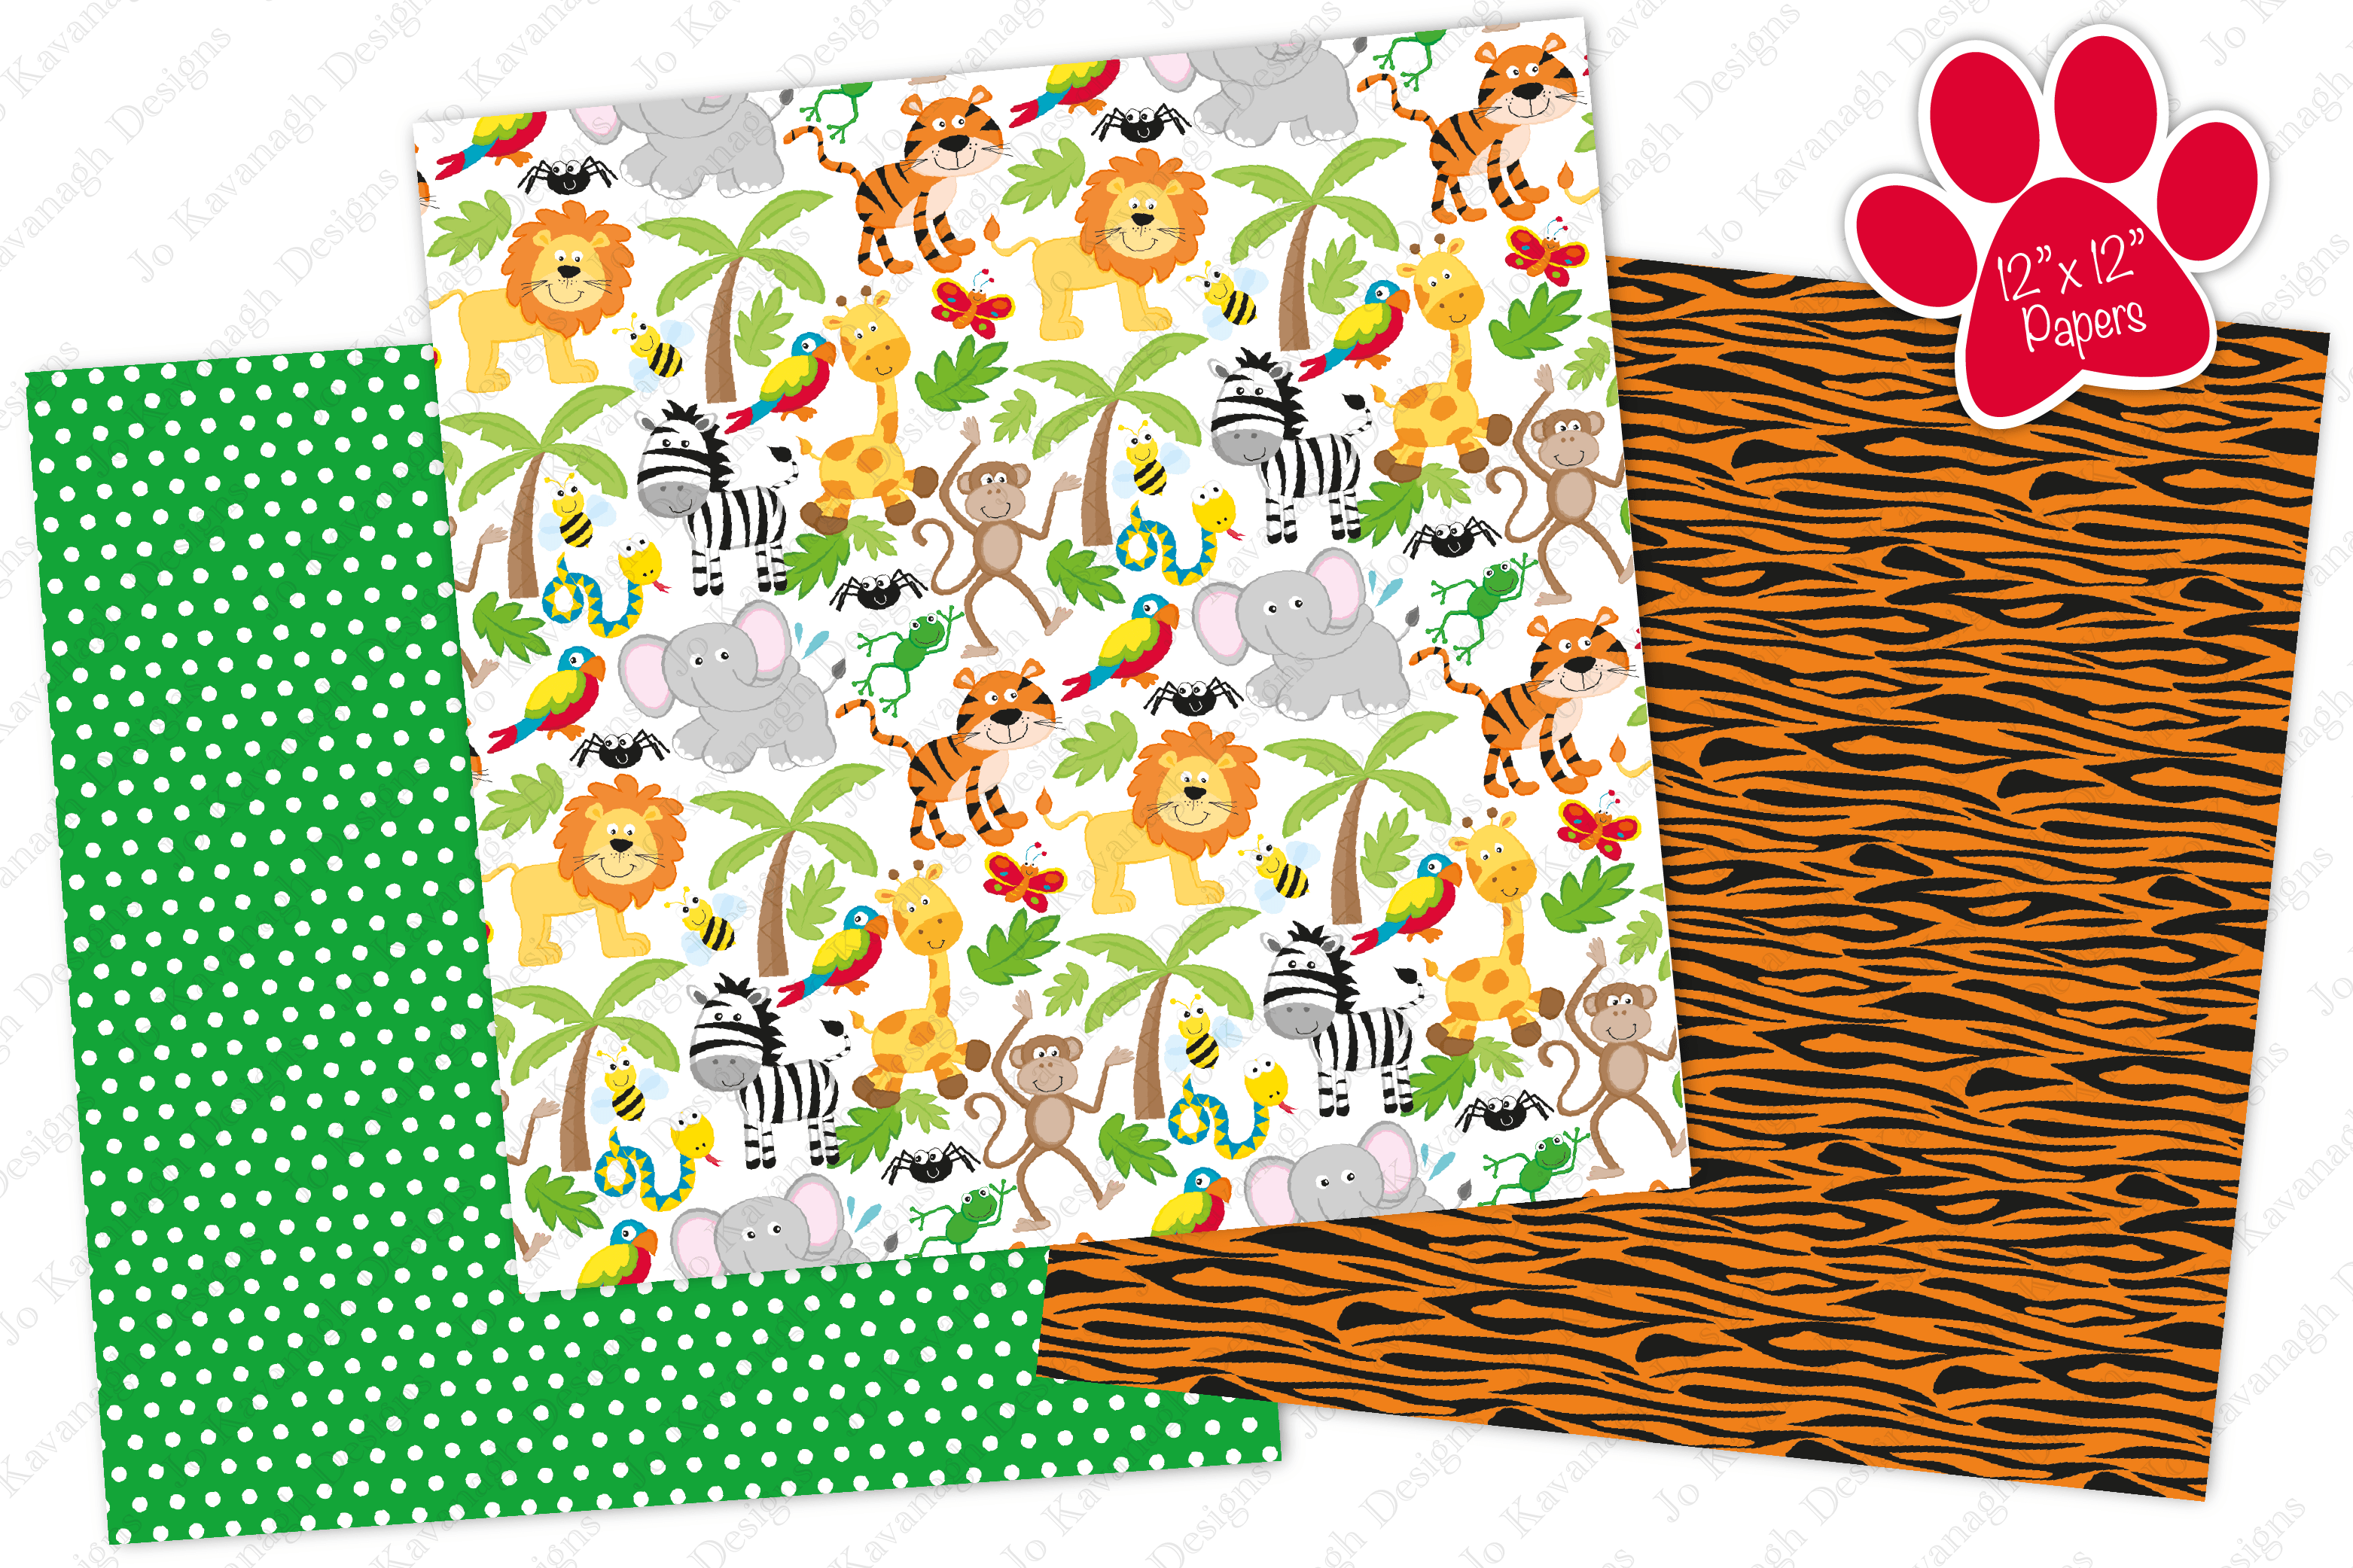 Jungle Digital Papers Jungle Patterns Jungle Animal Papers